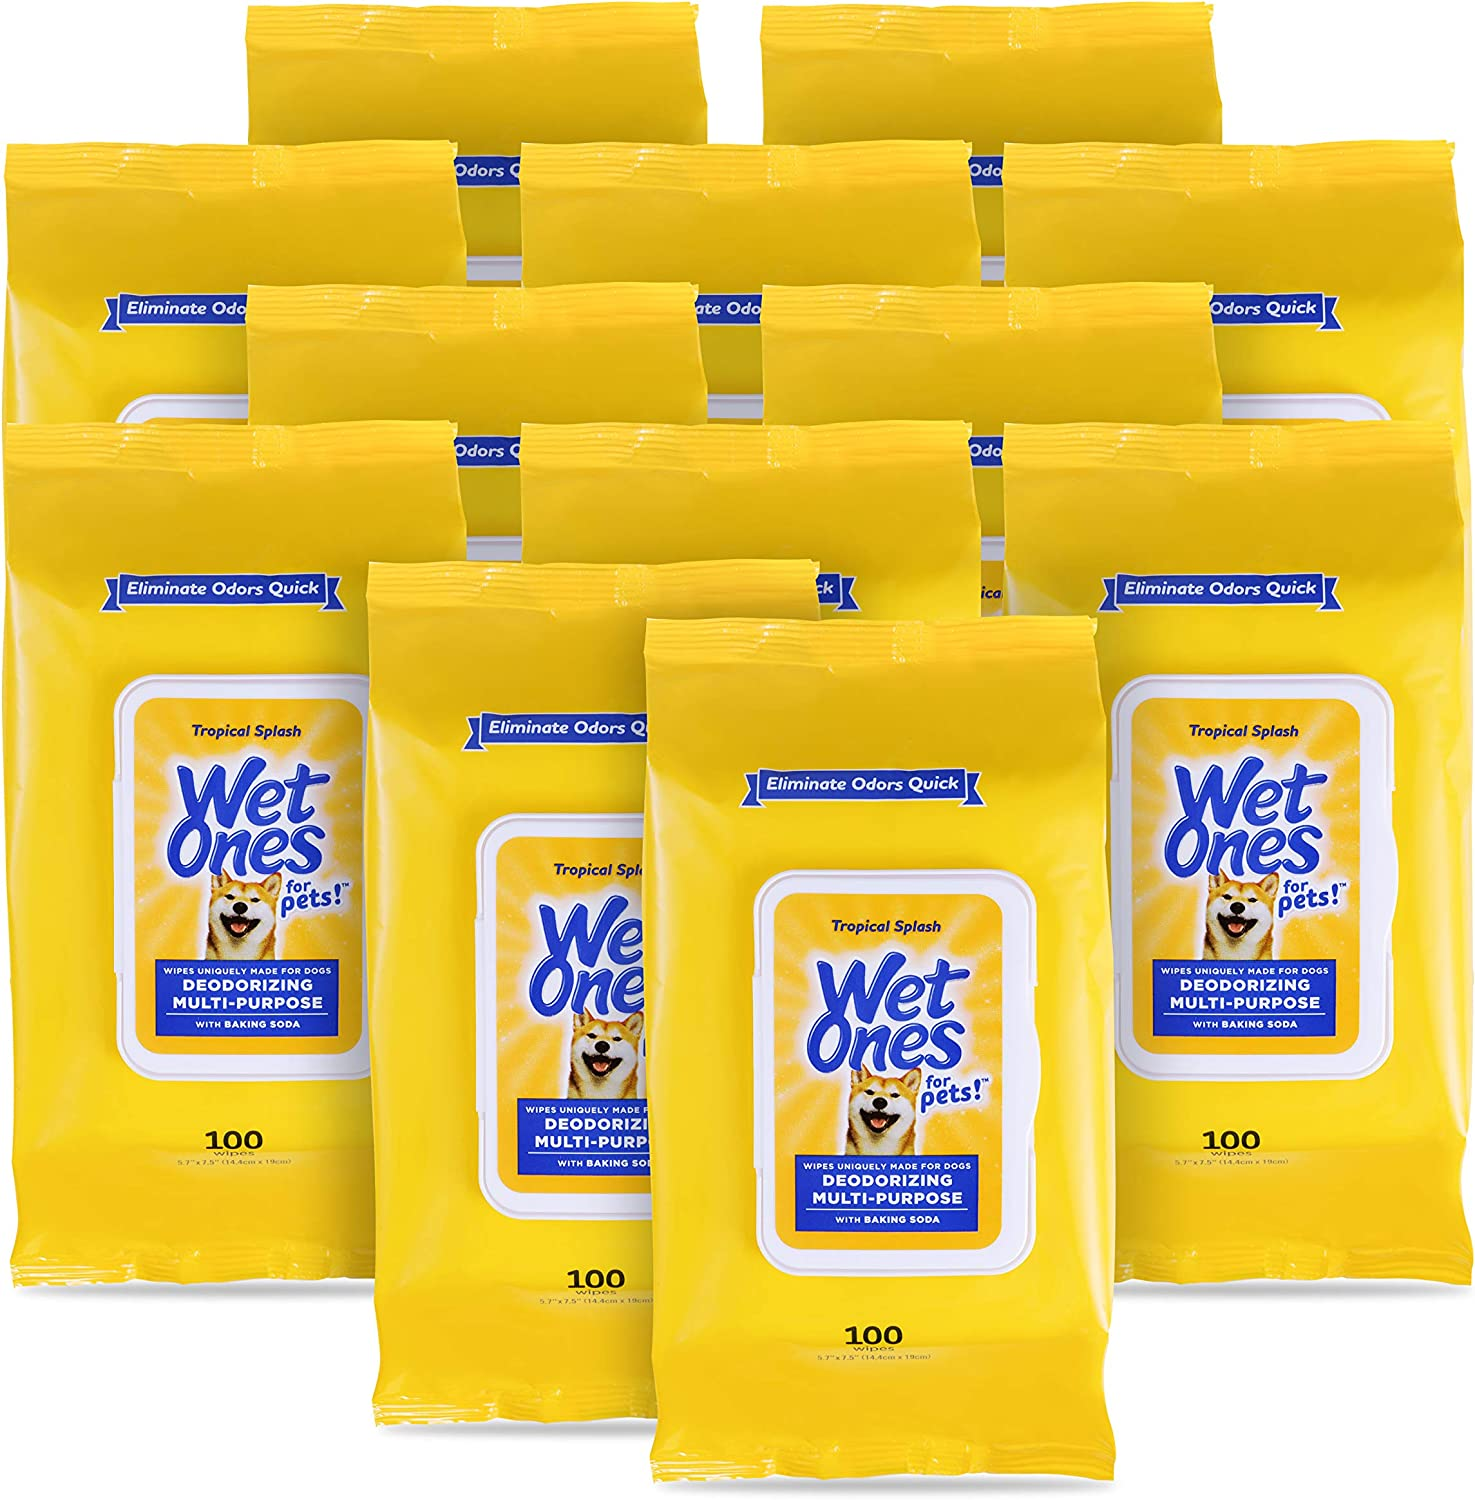 Wet Max 90% OFF Ones for Pets Bargain sale Deodorizing With Dog Wipes Multi-Purpose Bakin